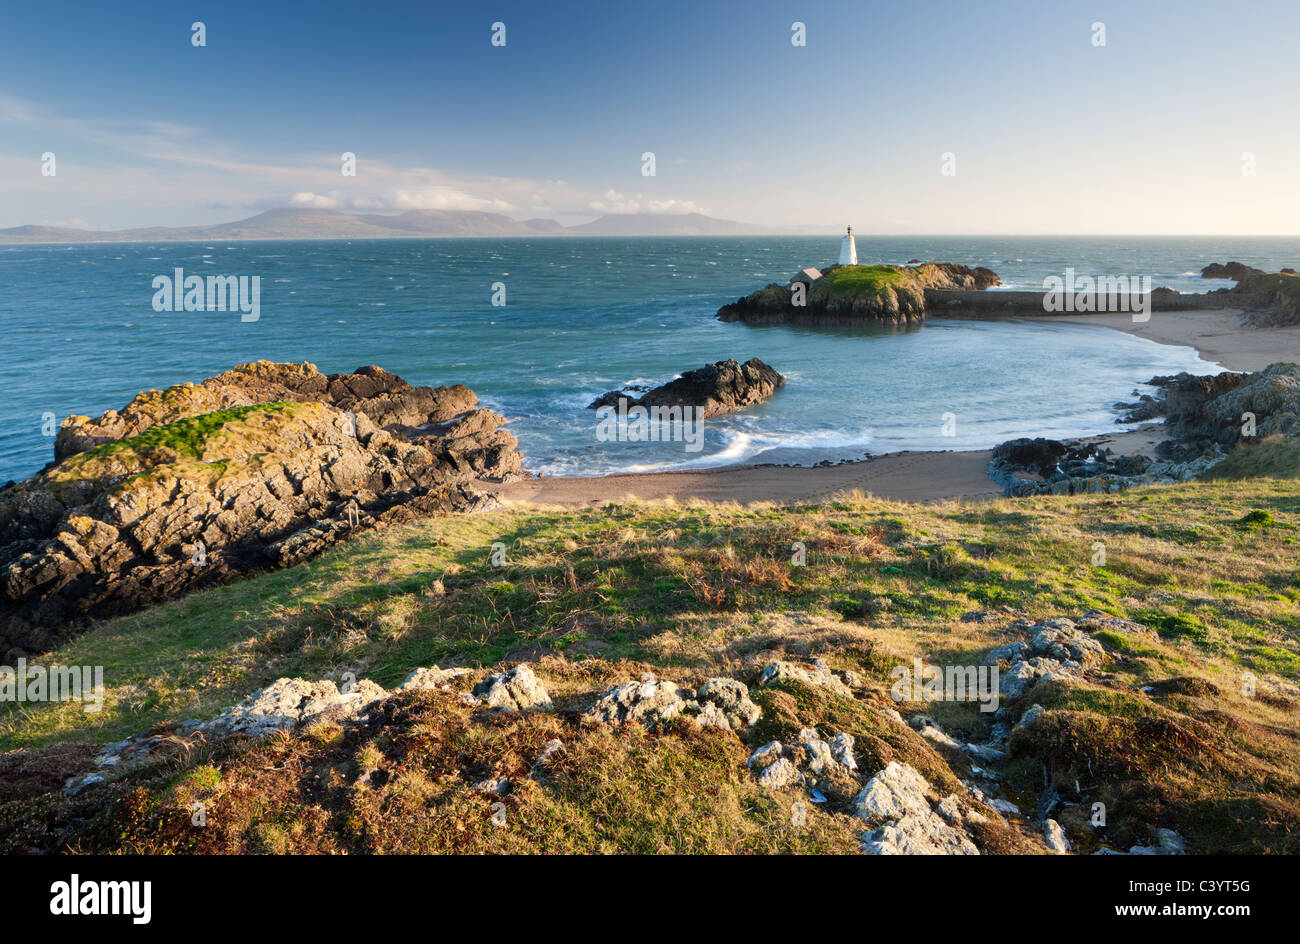 Early evening view of Pilots Cove and the beacon lighthouse Tŵr Bach on Llanddwyn Island, Newborough, Anglesey, - Stock Image